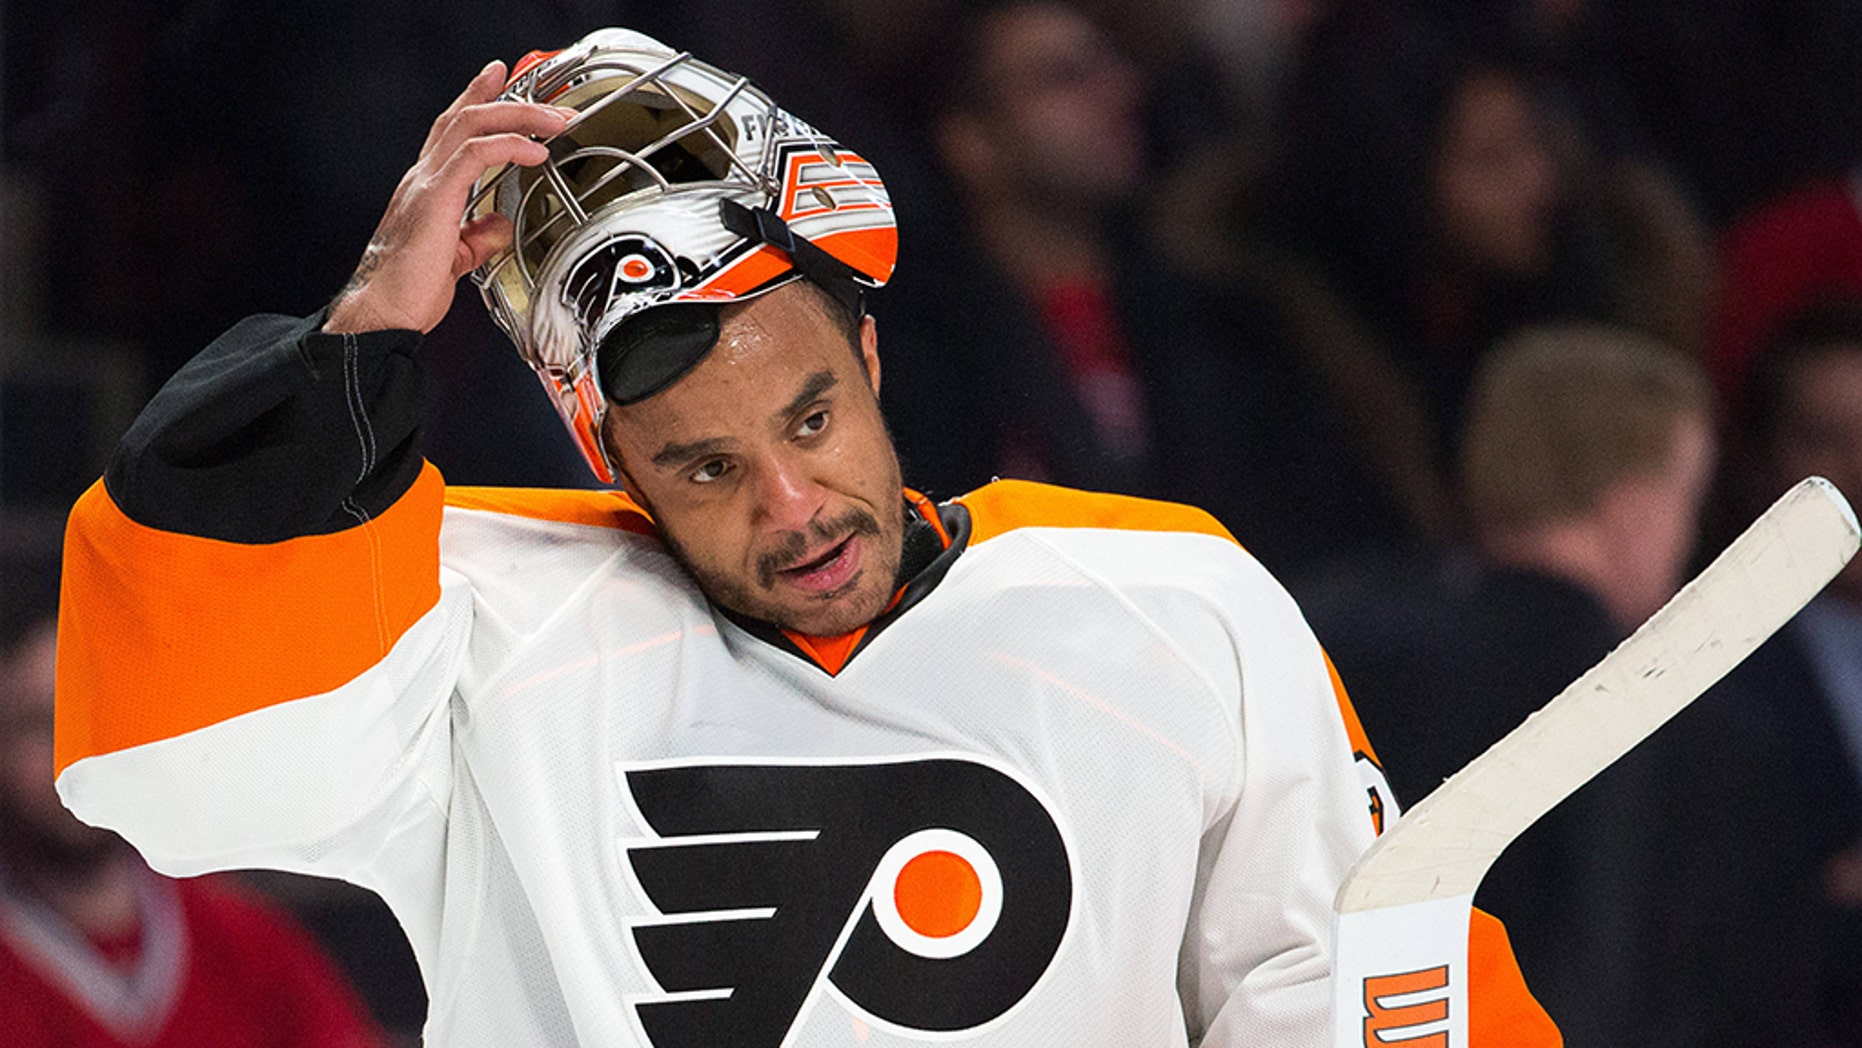 Ray Emery pictured in goal for the Philadelphia Flyers in February 2015, during his final National Hockey League season.